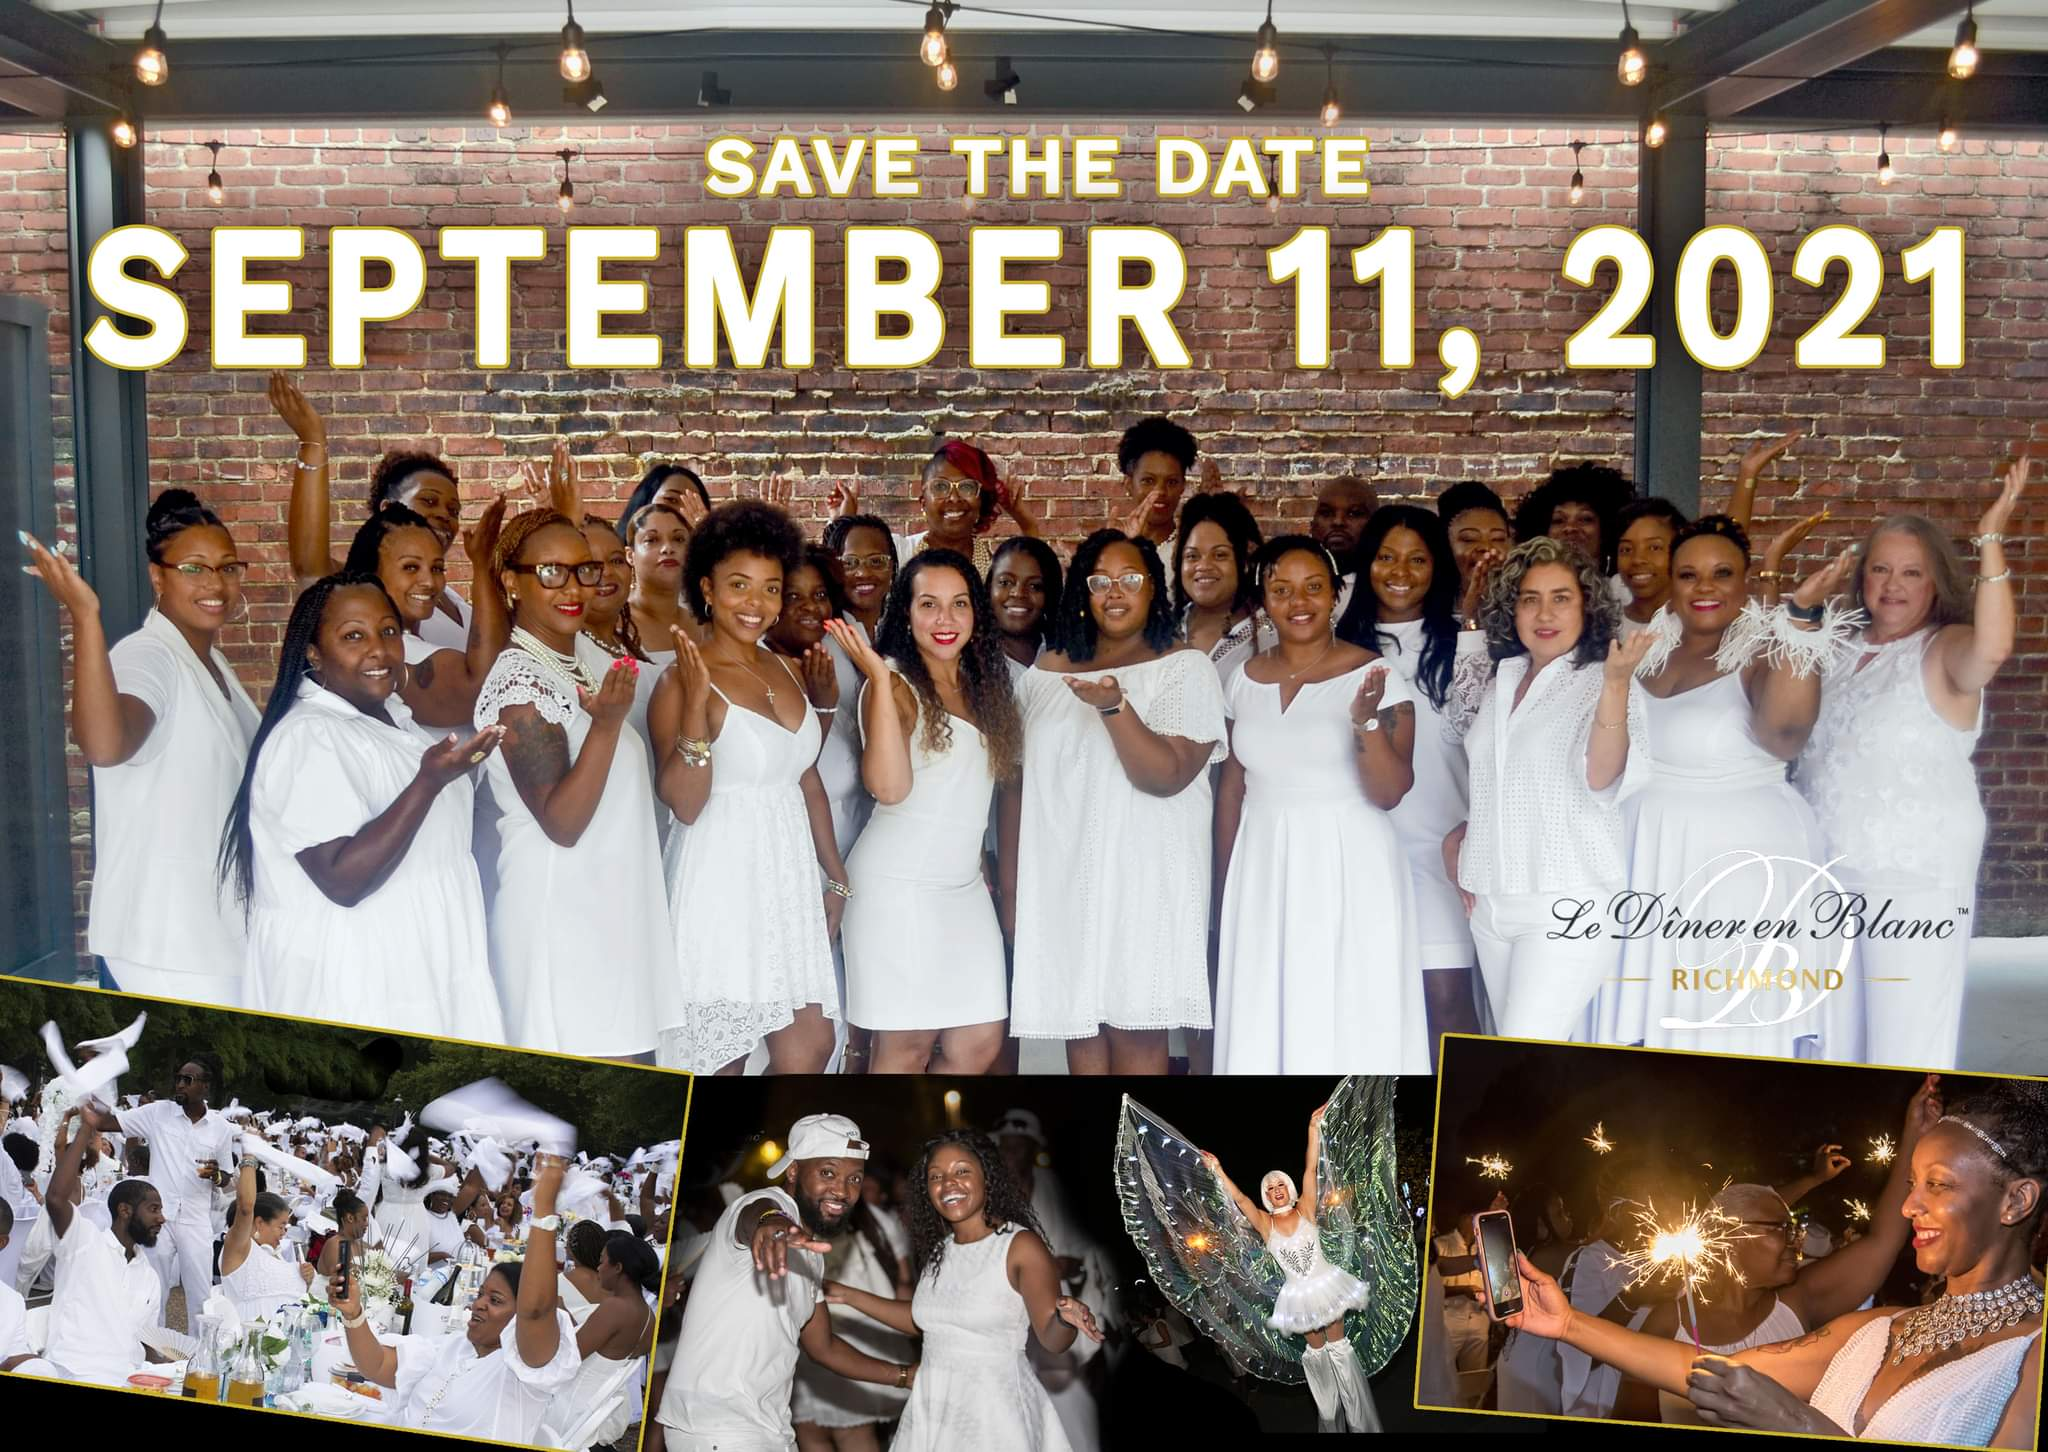 Le Diner en Blanc - Richmond Returns for Its 4th Edition on September 11, 2021